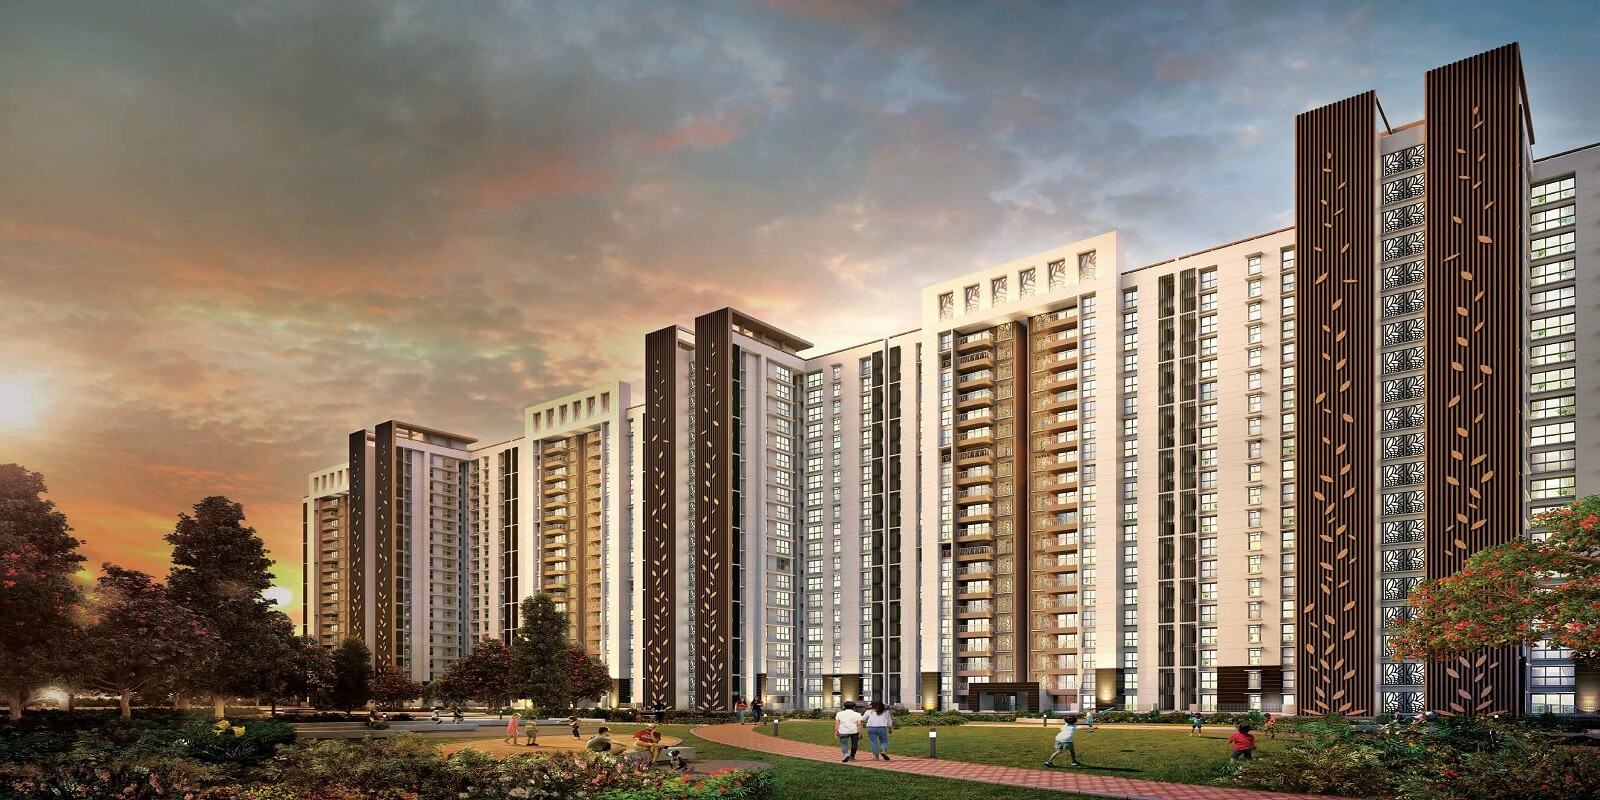 lodha upper thane sereno a1 project large image2